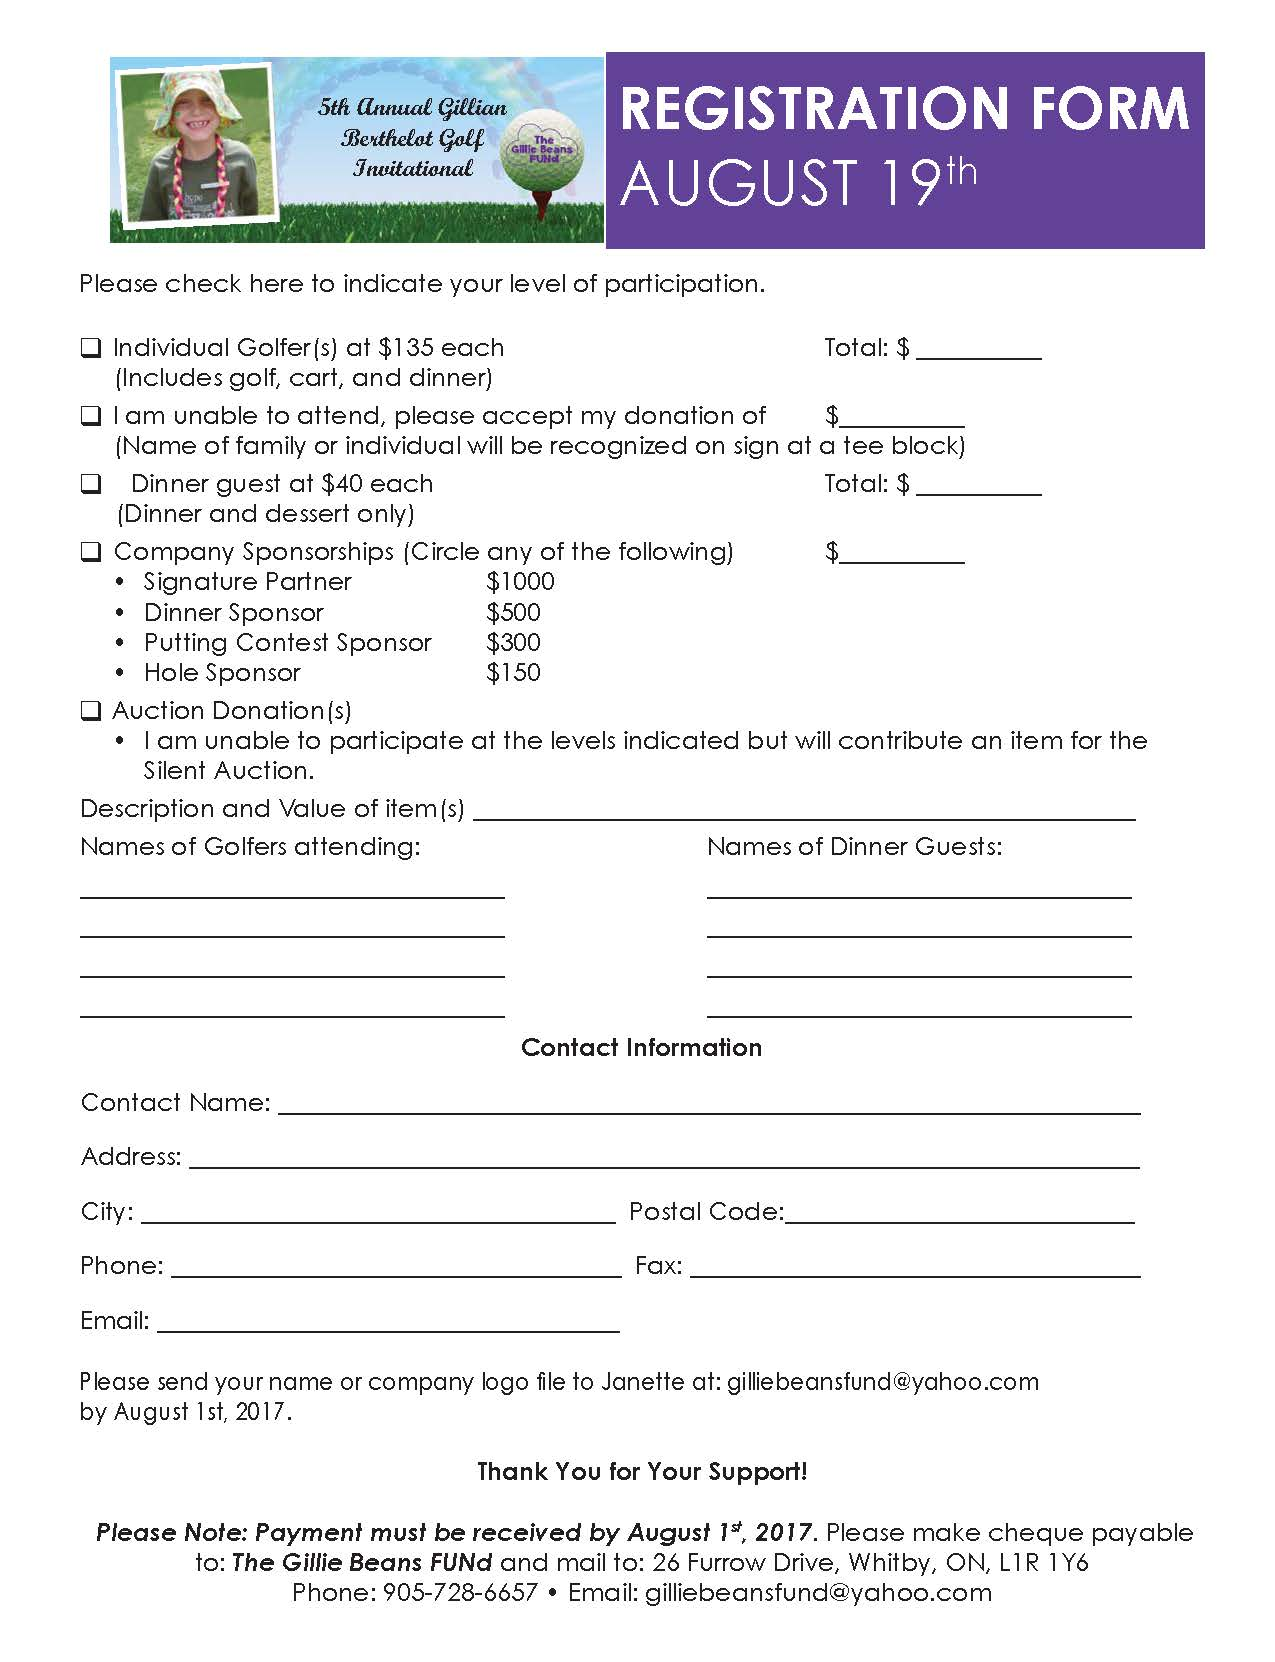 gb golf 2017 2 flyer Page 2